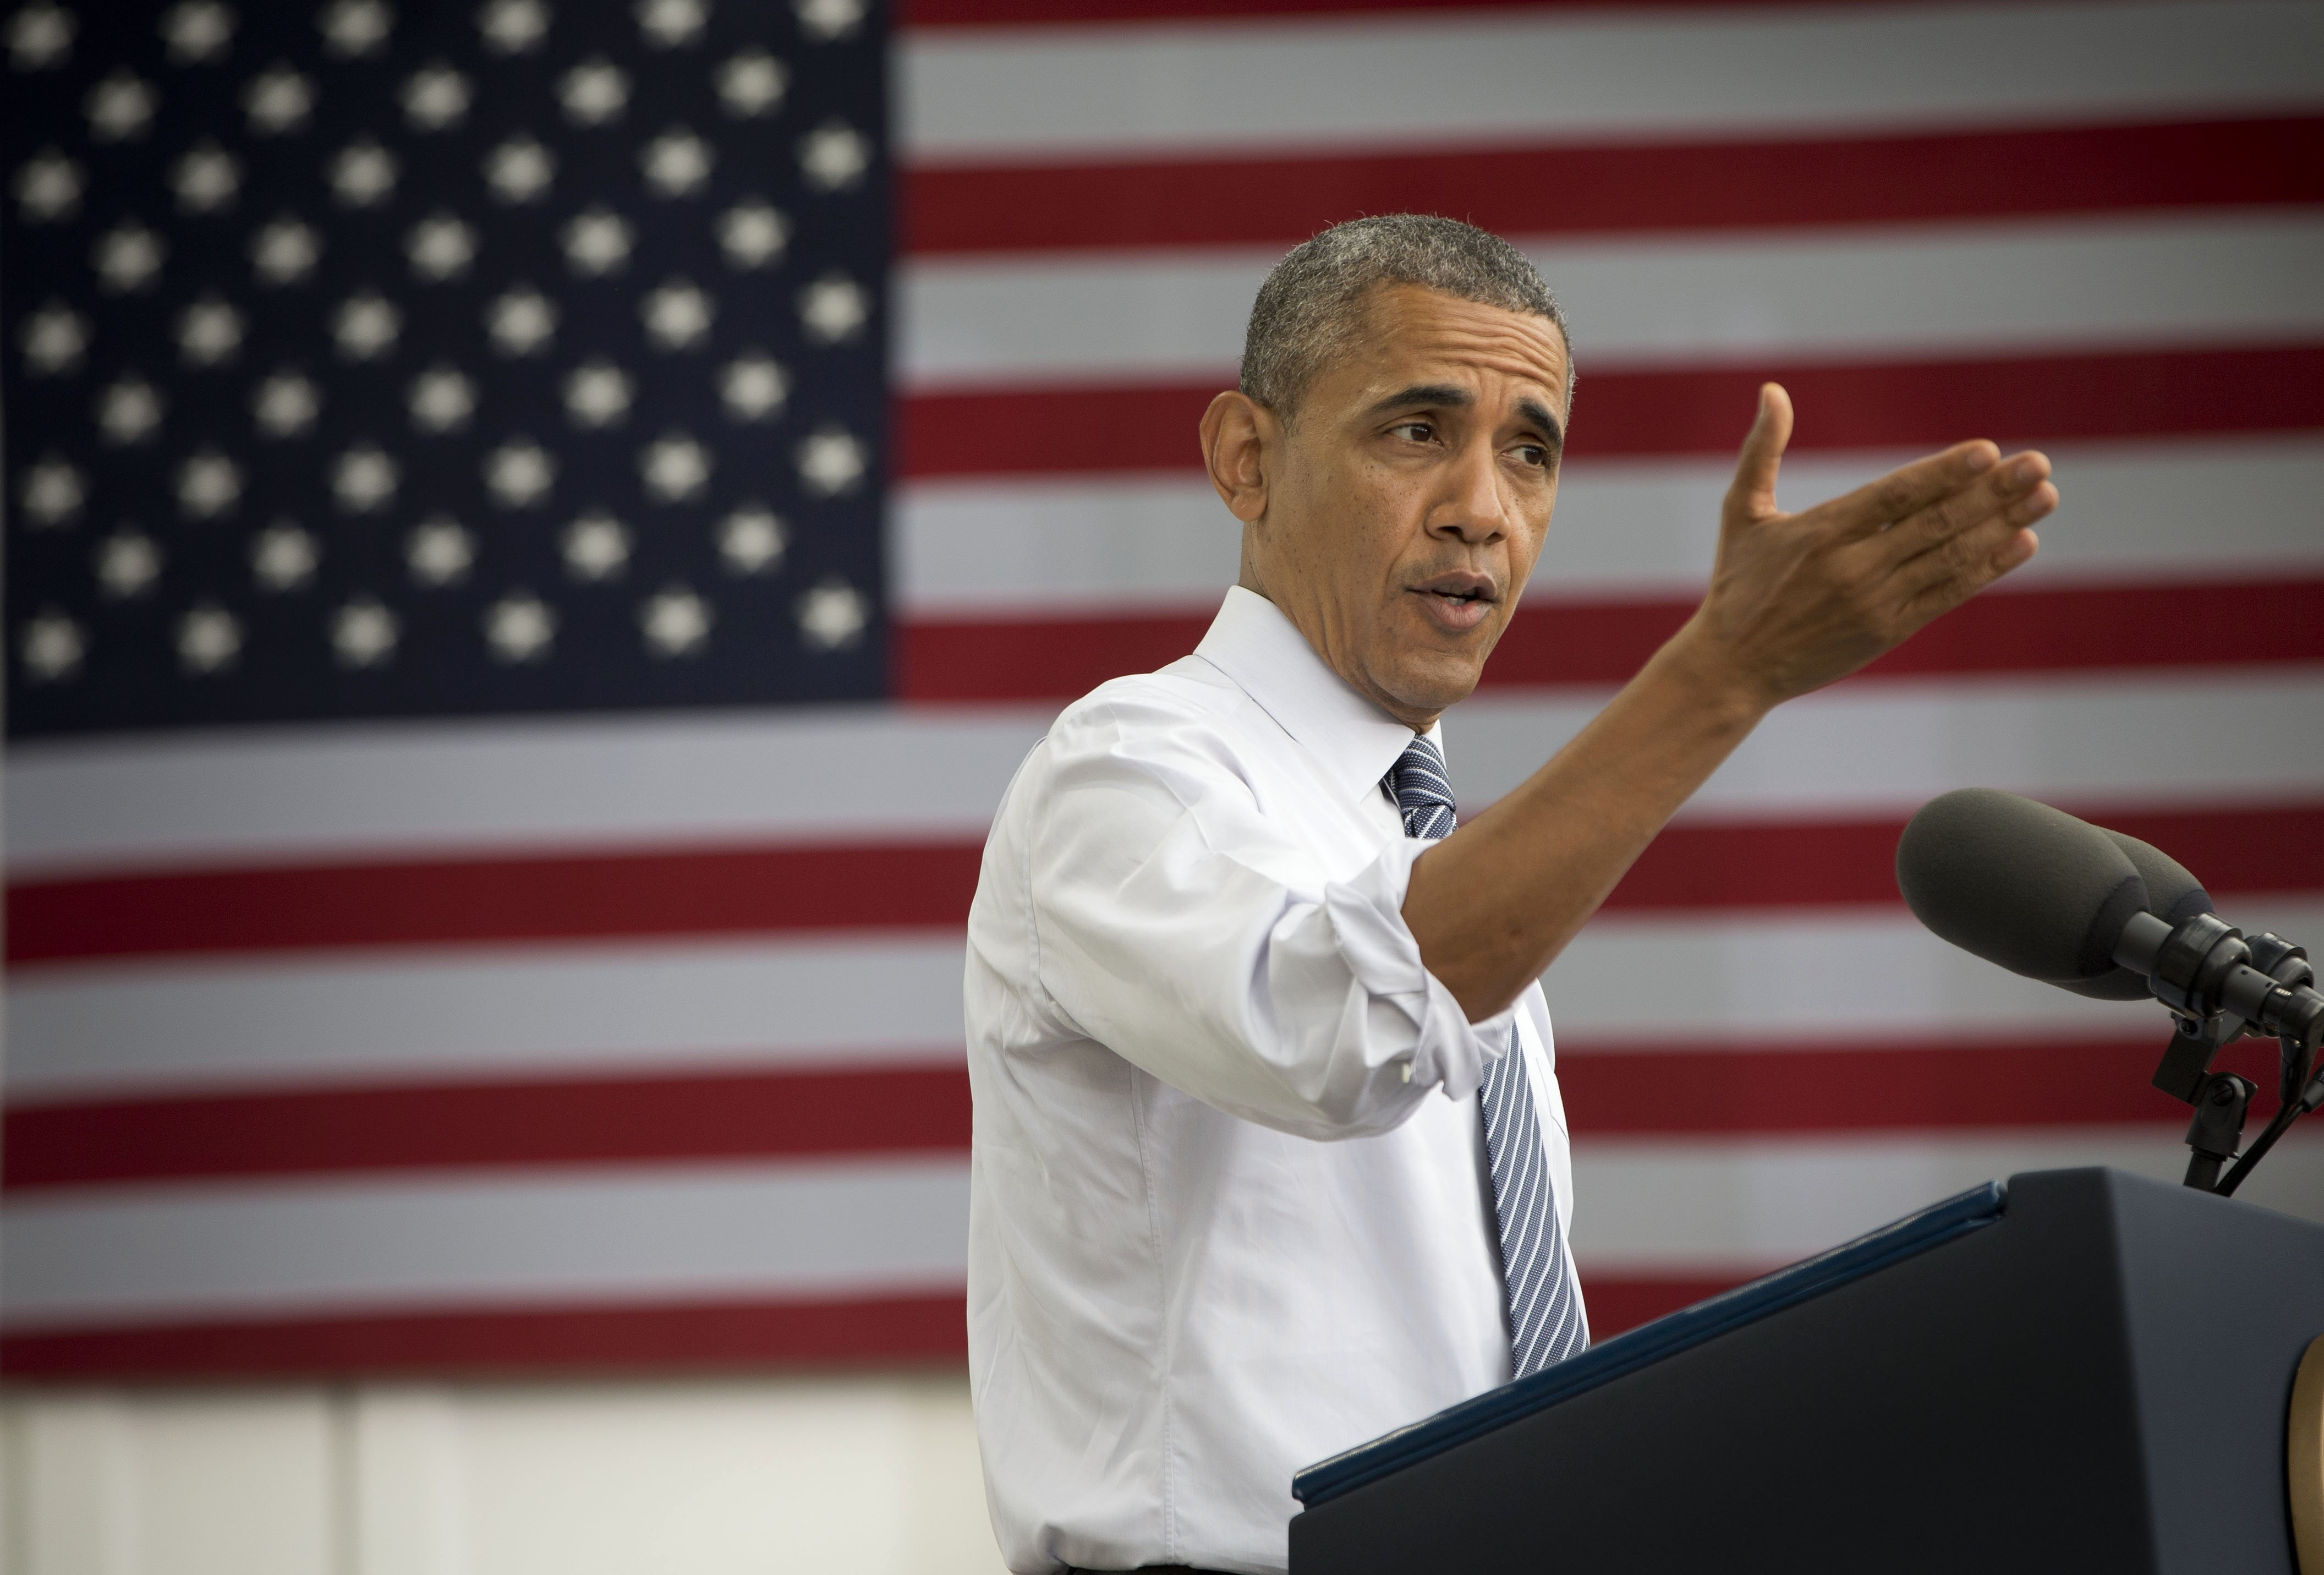 President Barack Obama gestures while speaking about the economy at Lake Harriet Band Shell in Minneapolis on June 27, 2014